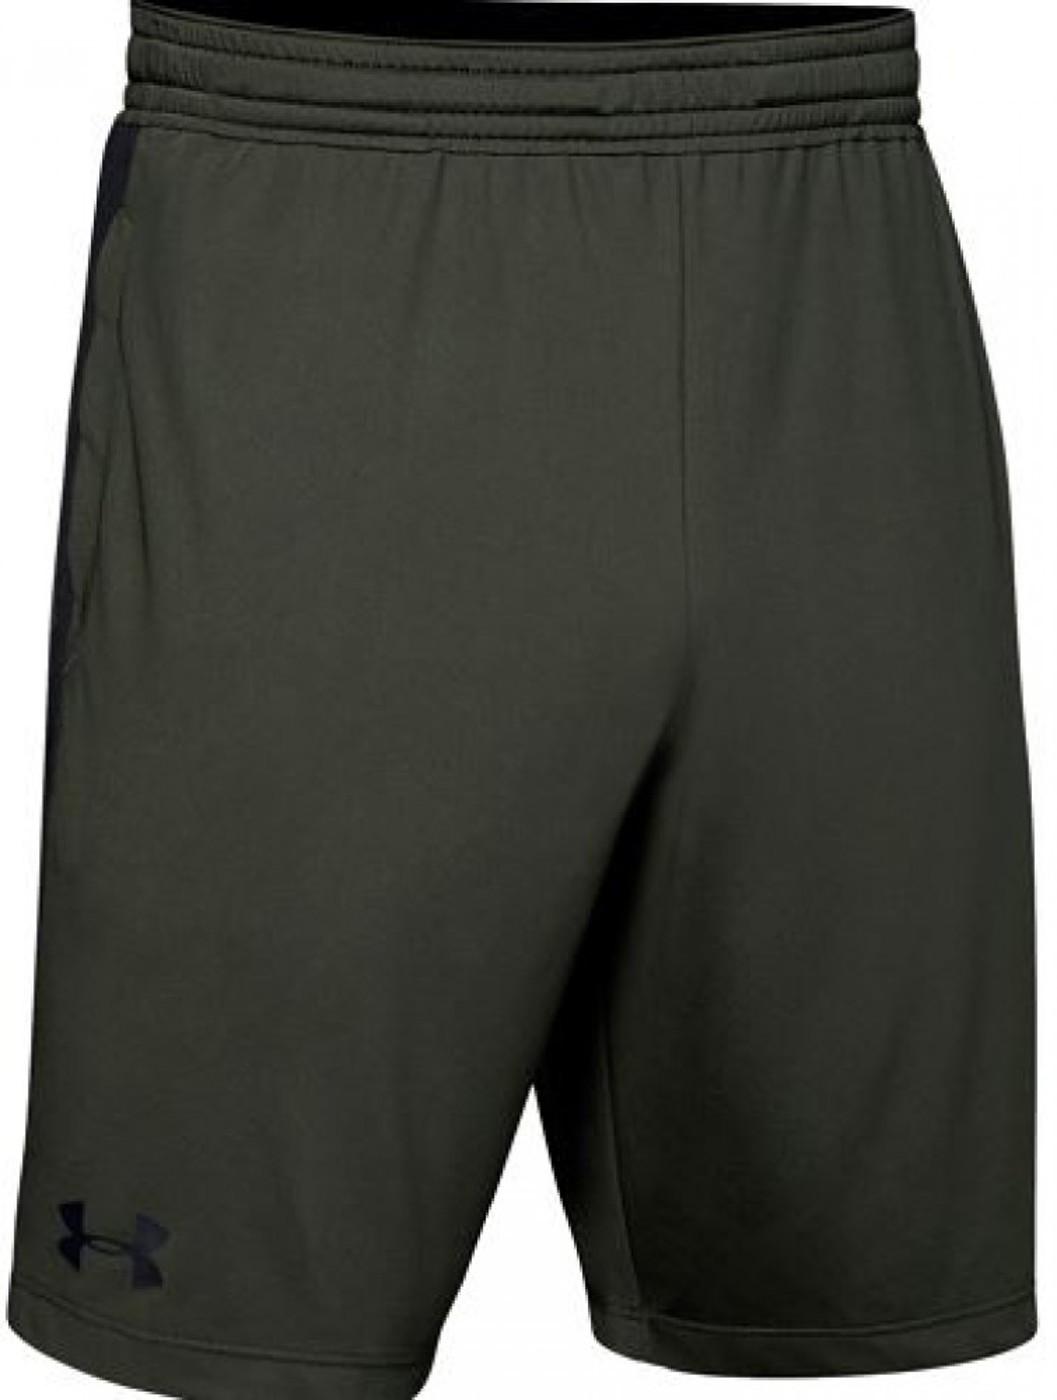 UNDER ARMOUR MK1 Short - Herren